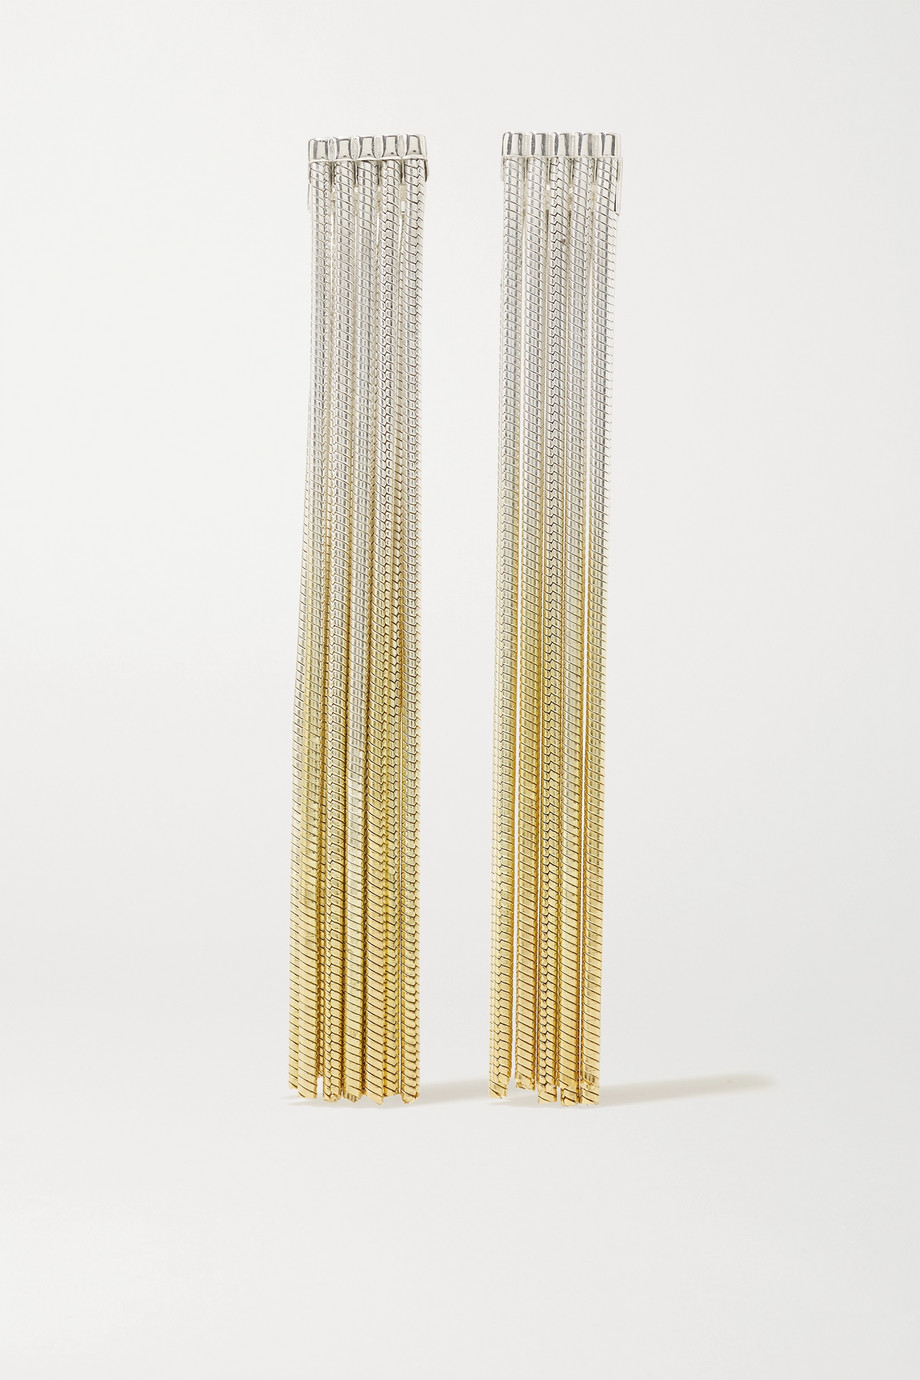 SARAH & SEBASTIAN Feeler gold vermeil and silver earrings